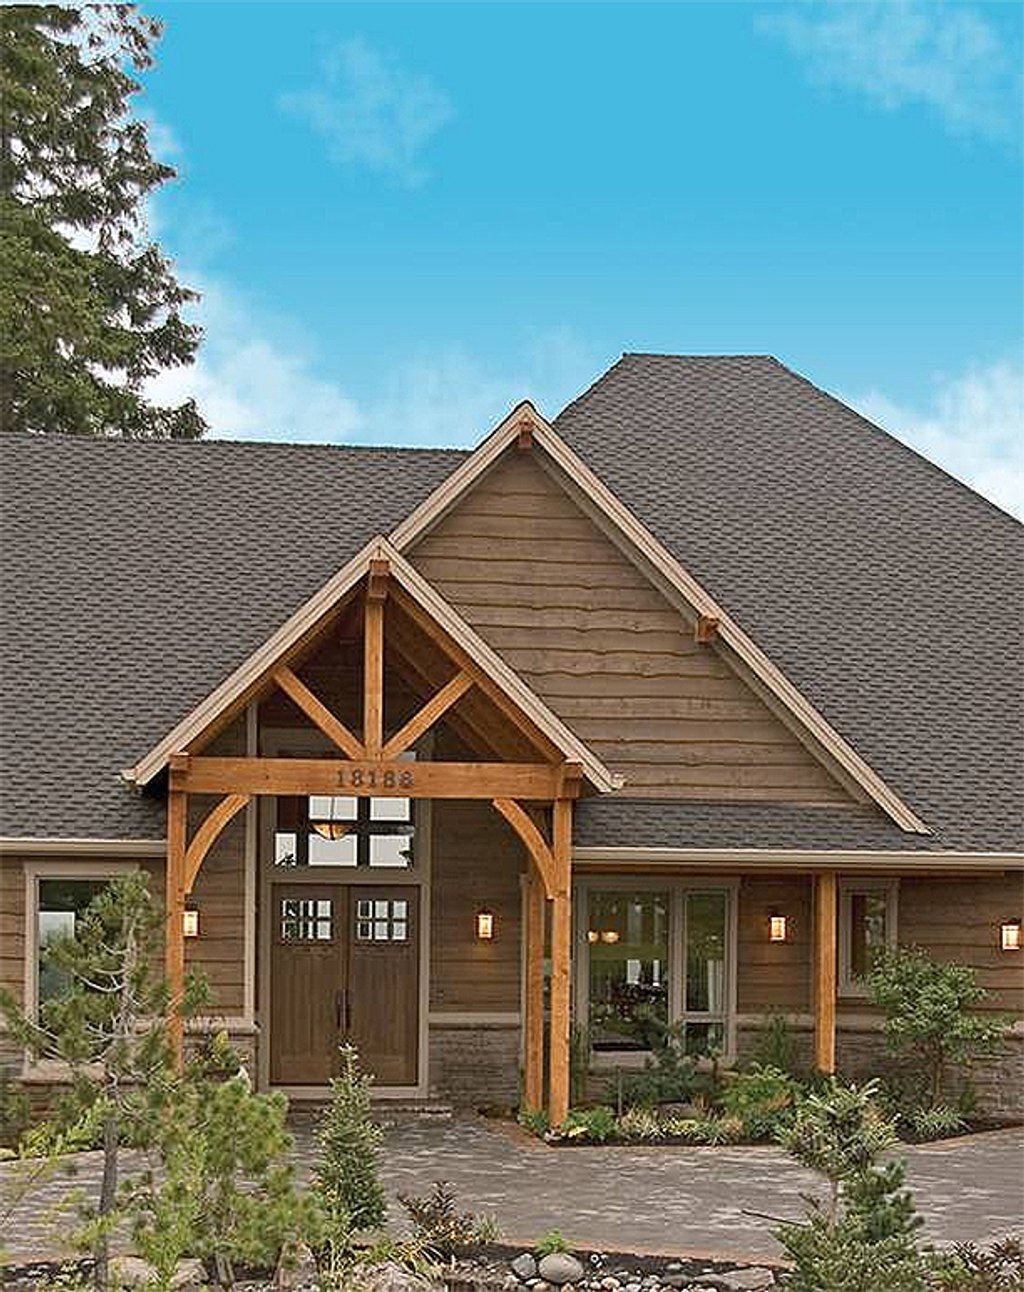 Craftsman style house plan 4 beds 3 5 baths 5155 sq ft for Craftsman style homes for sale in nh